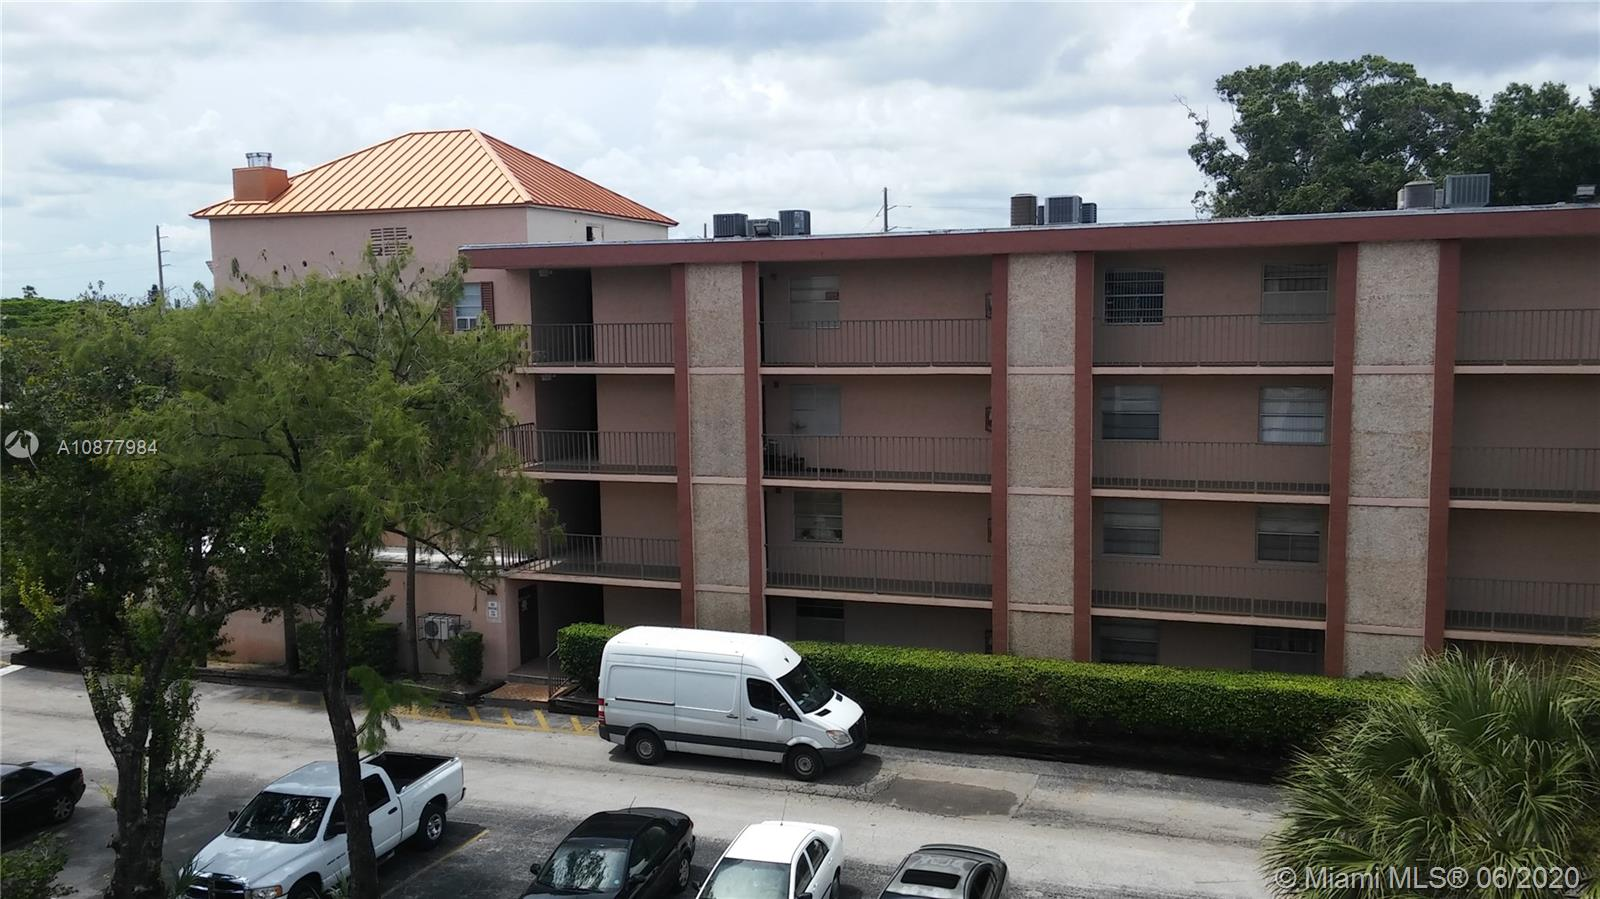 Upgrated 2 bedrooms 2 bathrooms condo fully equipped with everything for comfort leaving, exept your own toothbrash.  55 + community in process of 40 years full upgrating with new roofs, elevators, building painting and other upgrades. After completion Association start next term full reserve. Full time manager on site. Community secured with more than 70 recording 24/7 cameras connected to Police Station. Common area includes heated pool, jacuzzi, barbeque area with gazebo, separated men and women hot saunas and bathrooms, beautiful park , club house with auditorium, lobby, kitchen, billiard room, new last generation washers and driers on each floor. The area around has high developed business and public unfrastracture.